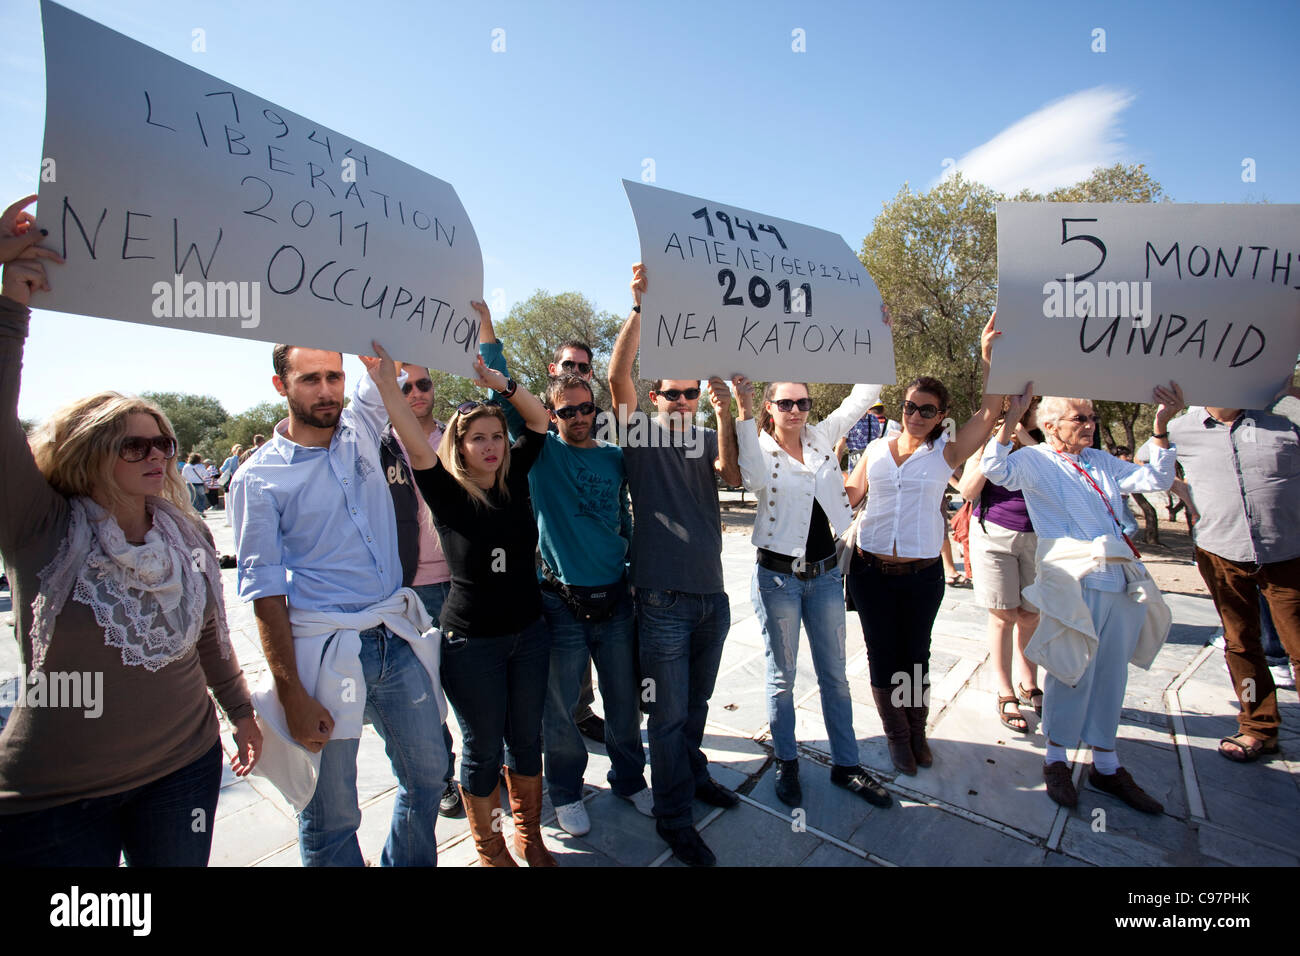 demonstration against austerity cuts Athens, Greece.Photo:Jeff Gilbert - Stock Image